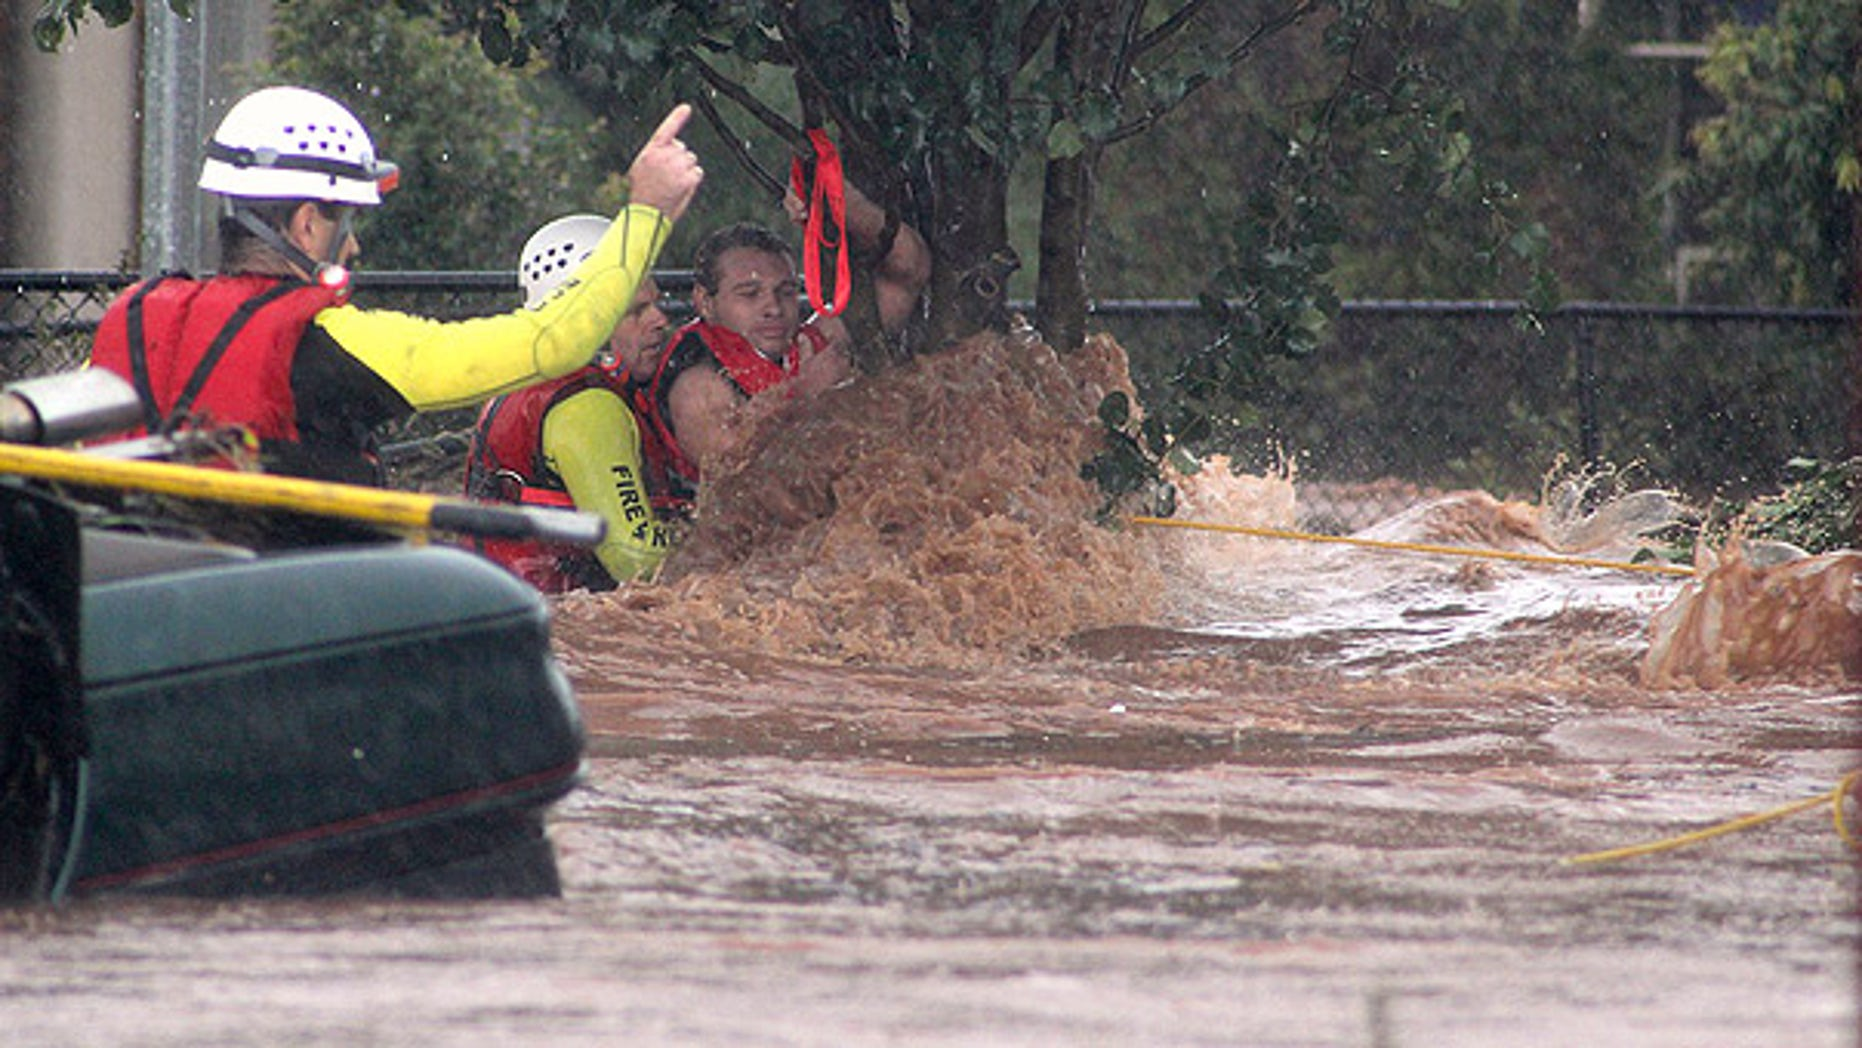 Jan. 10: A man is rescued by emergency workers after he was stranded clinging to a tree during a flash flood in Toowoomba, Australia.